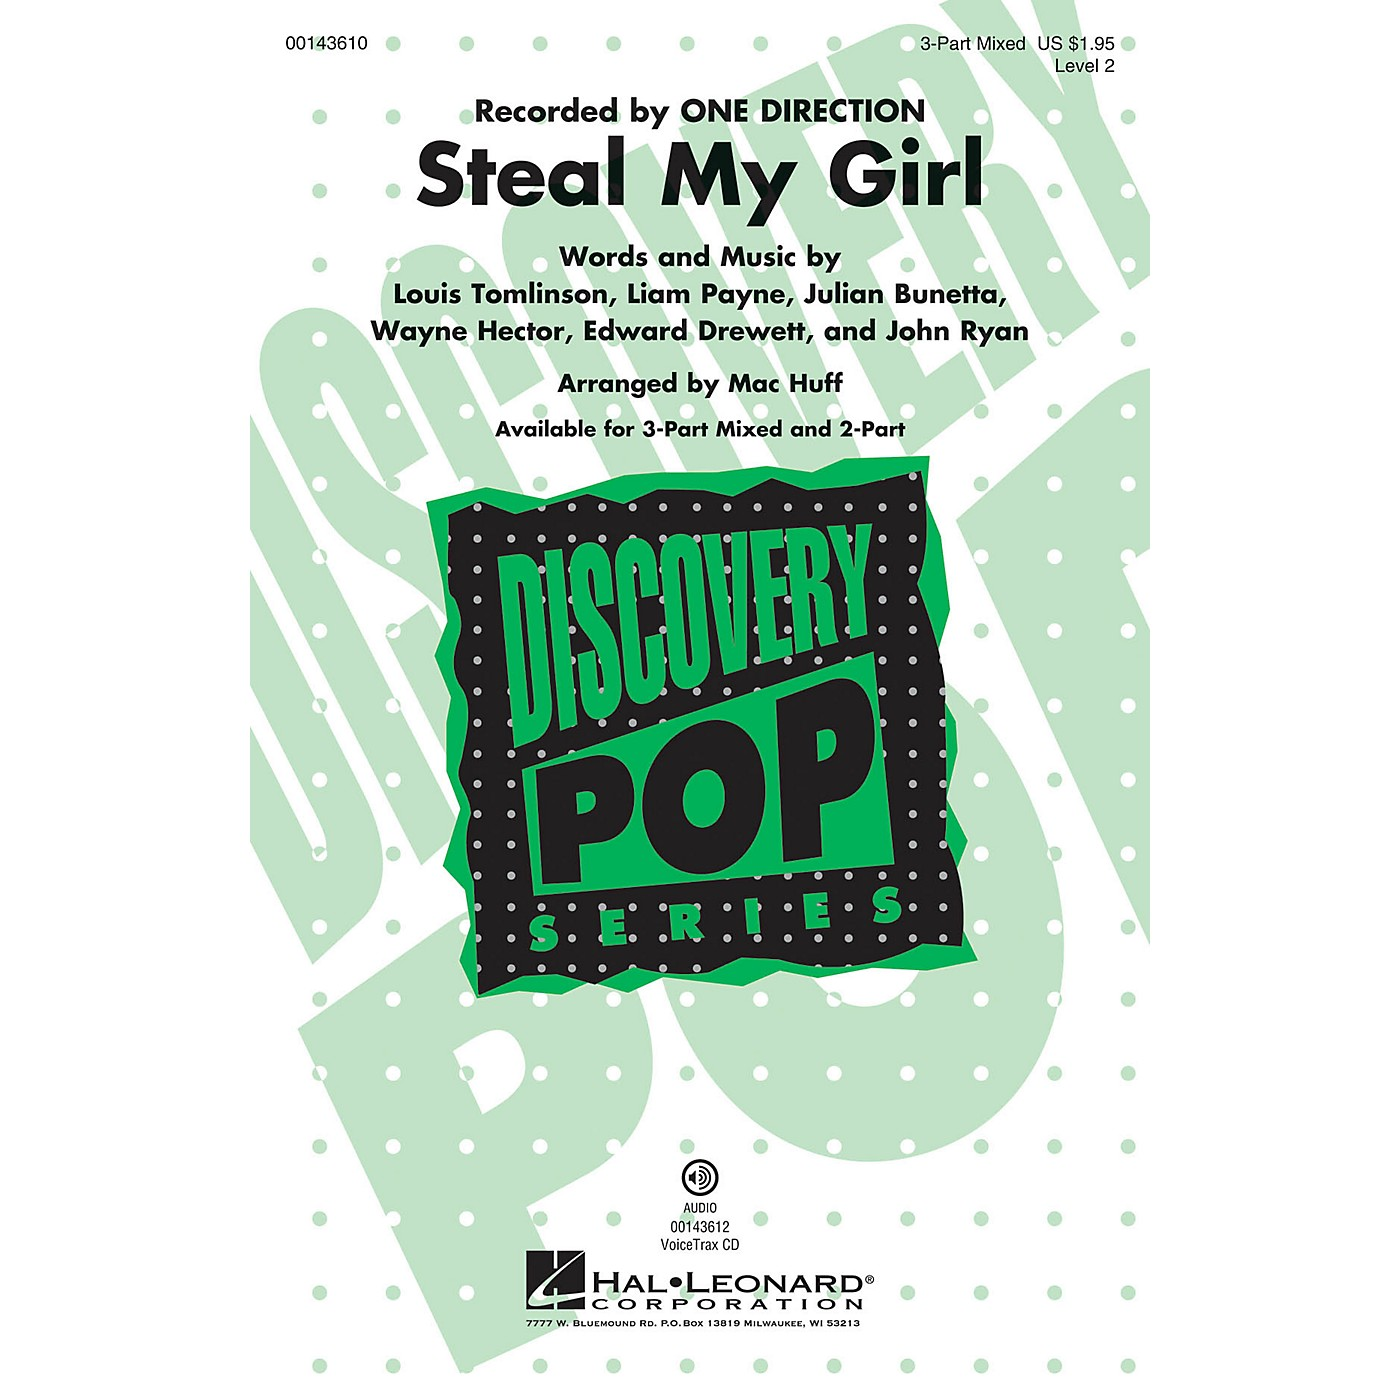 Hal Leonard Steal My Girl (Discovery Level 2) 3-Part Mixed by One Direction arranged by Mac Huff thumbnail